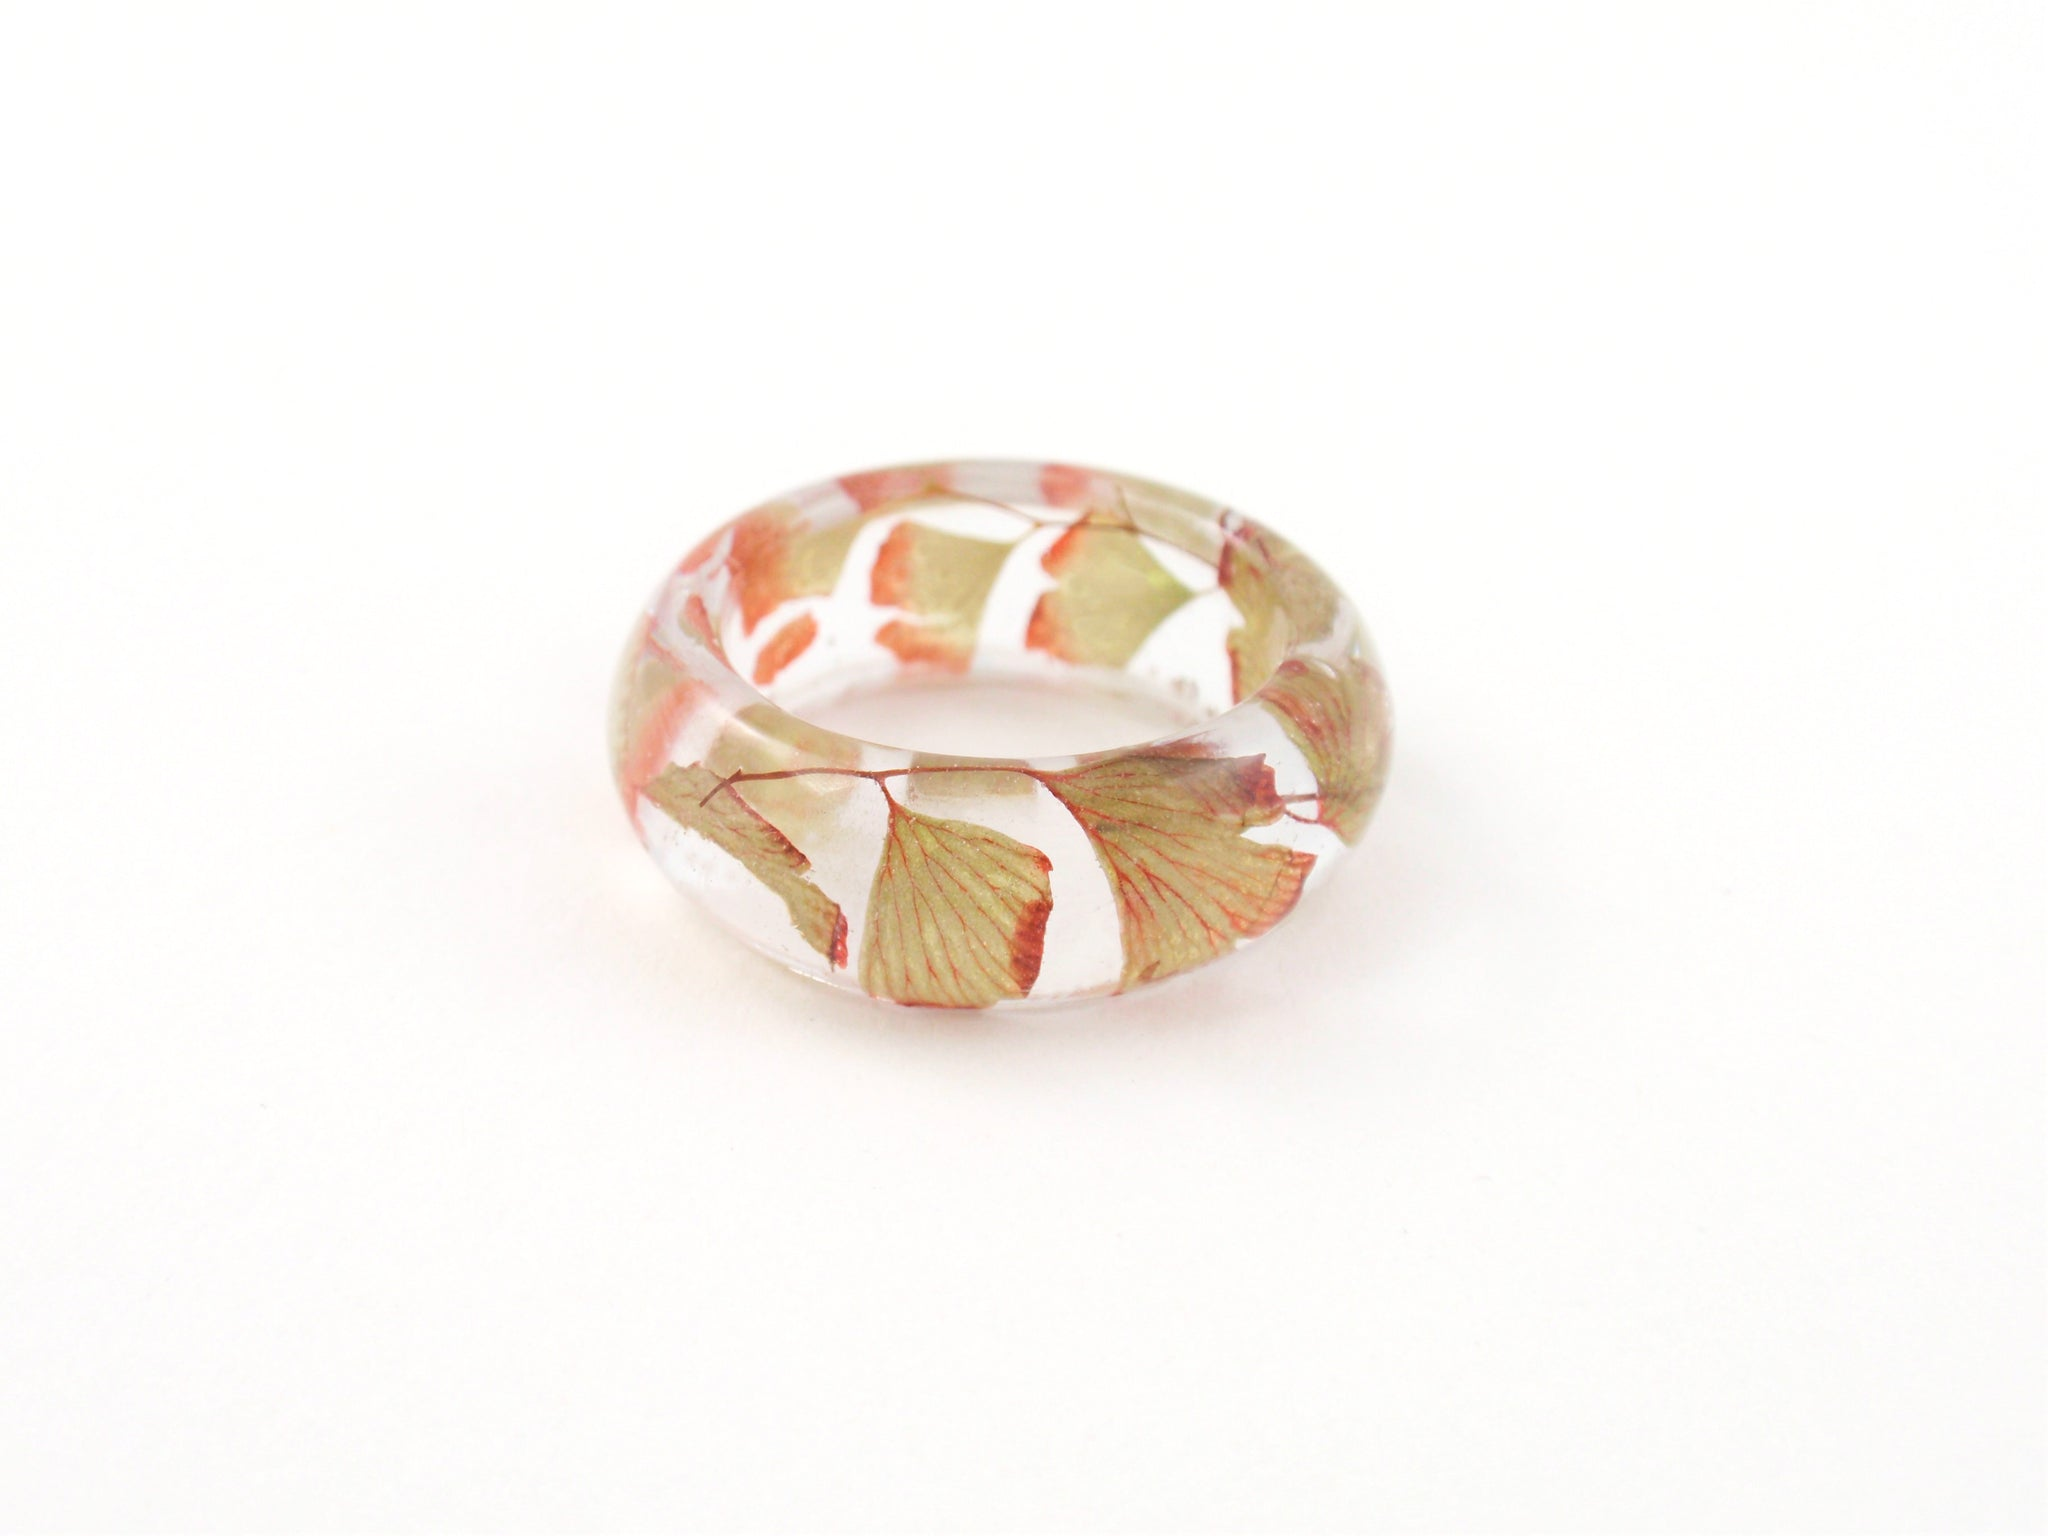 Nature ring, Botanical jewelry, Autmn leaves